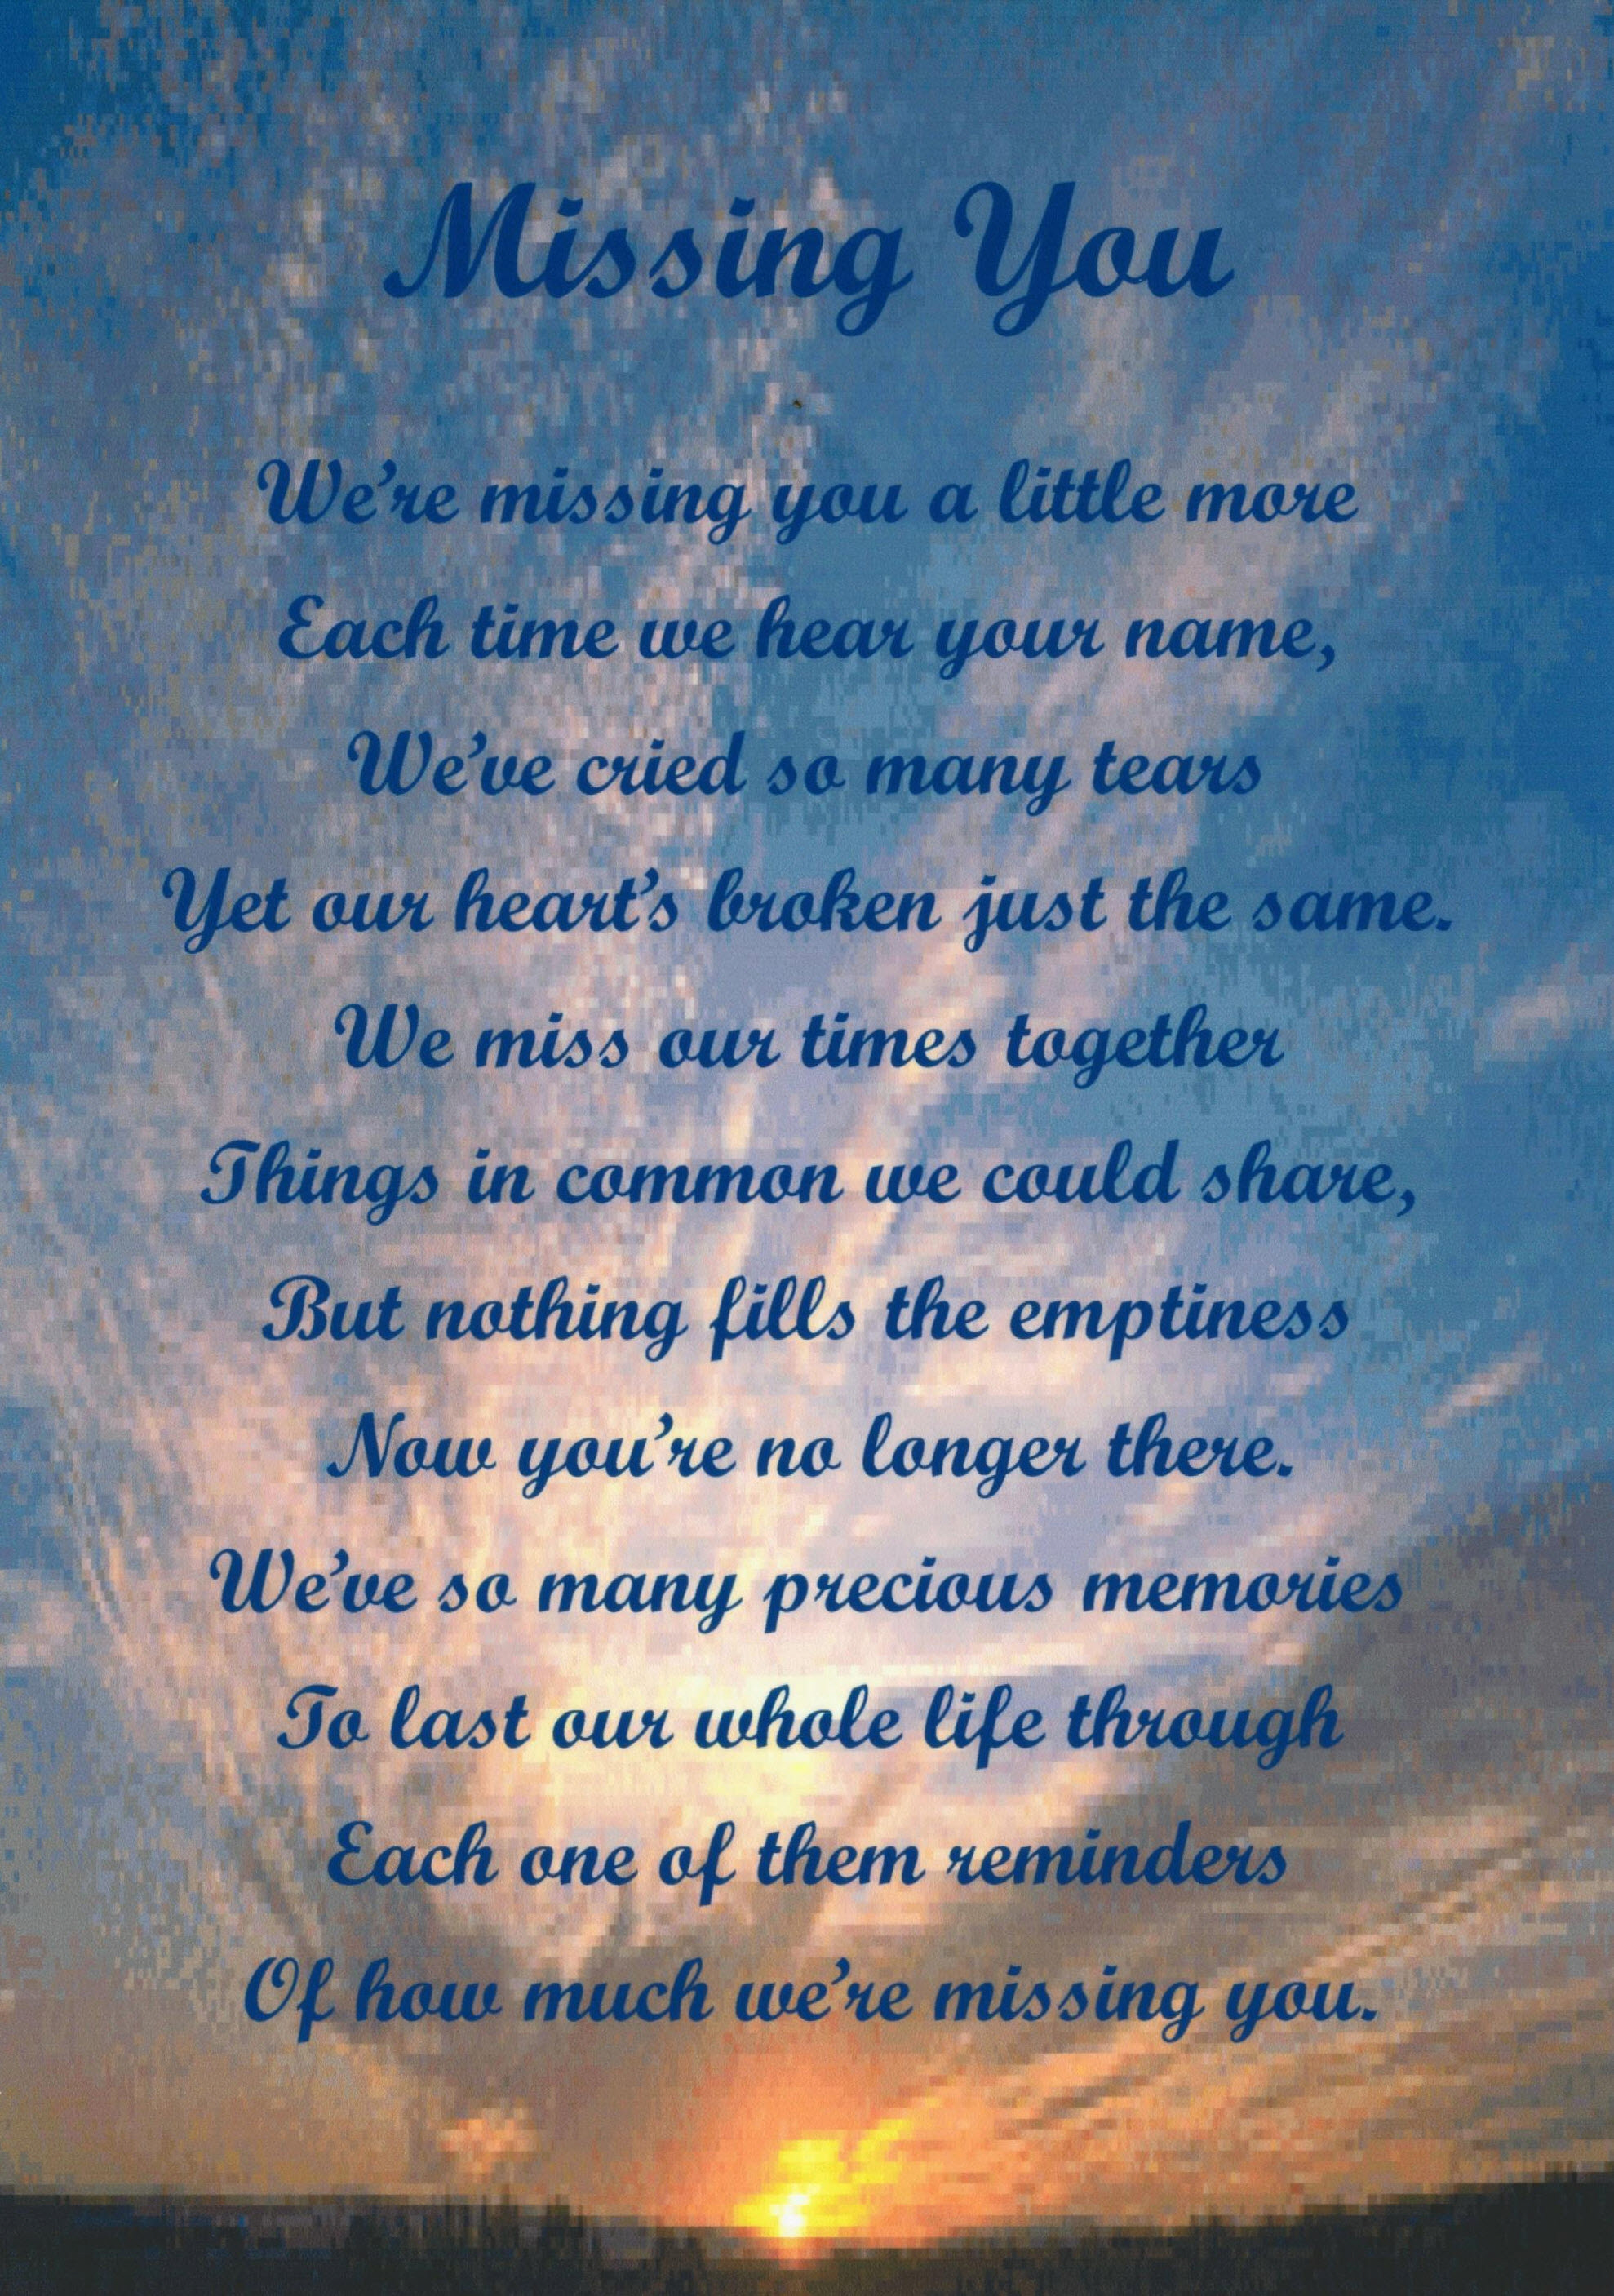 Husband Passed Away Quotes. QuotesGram